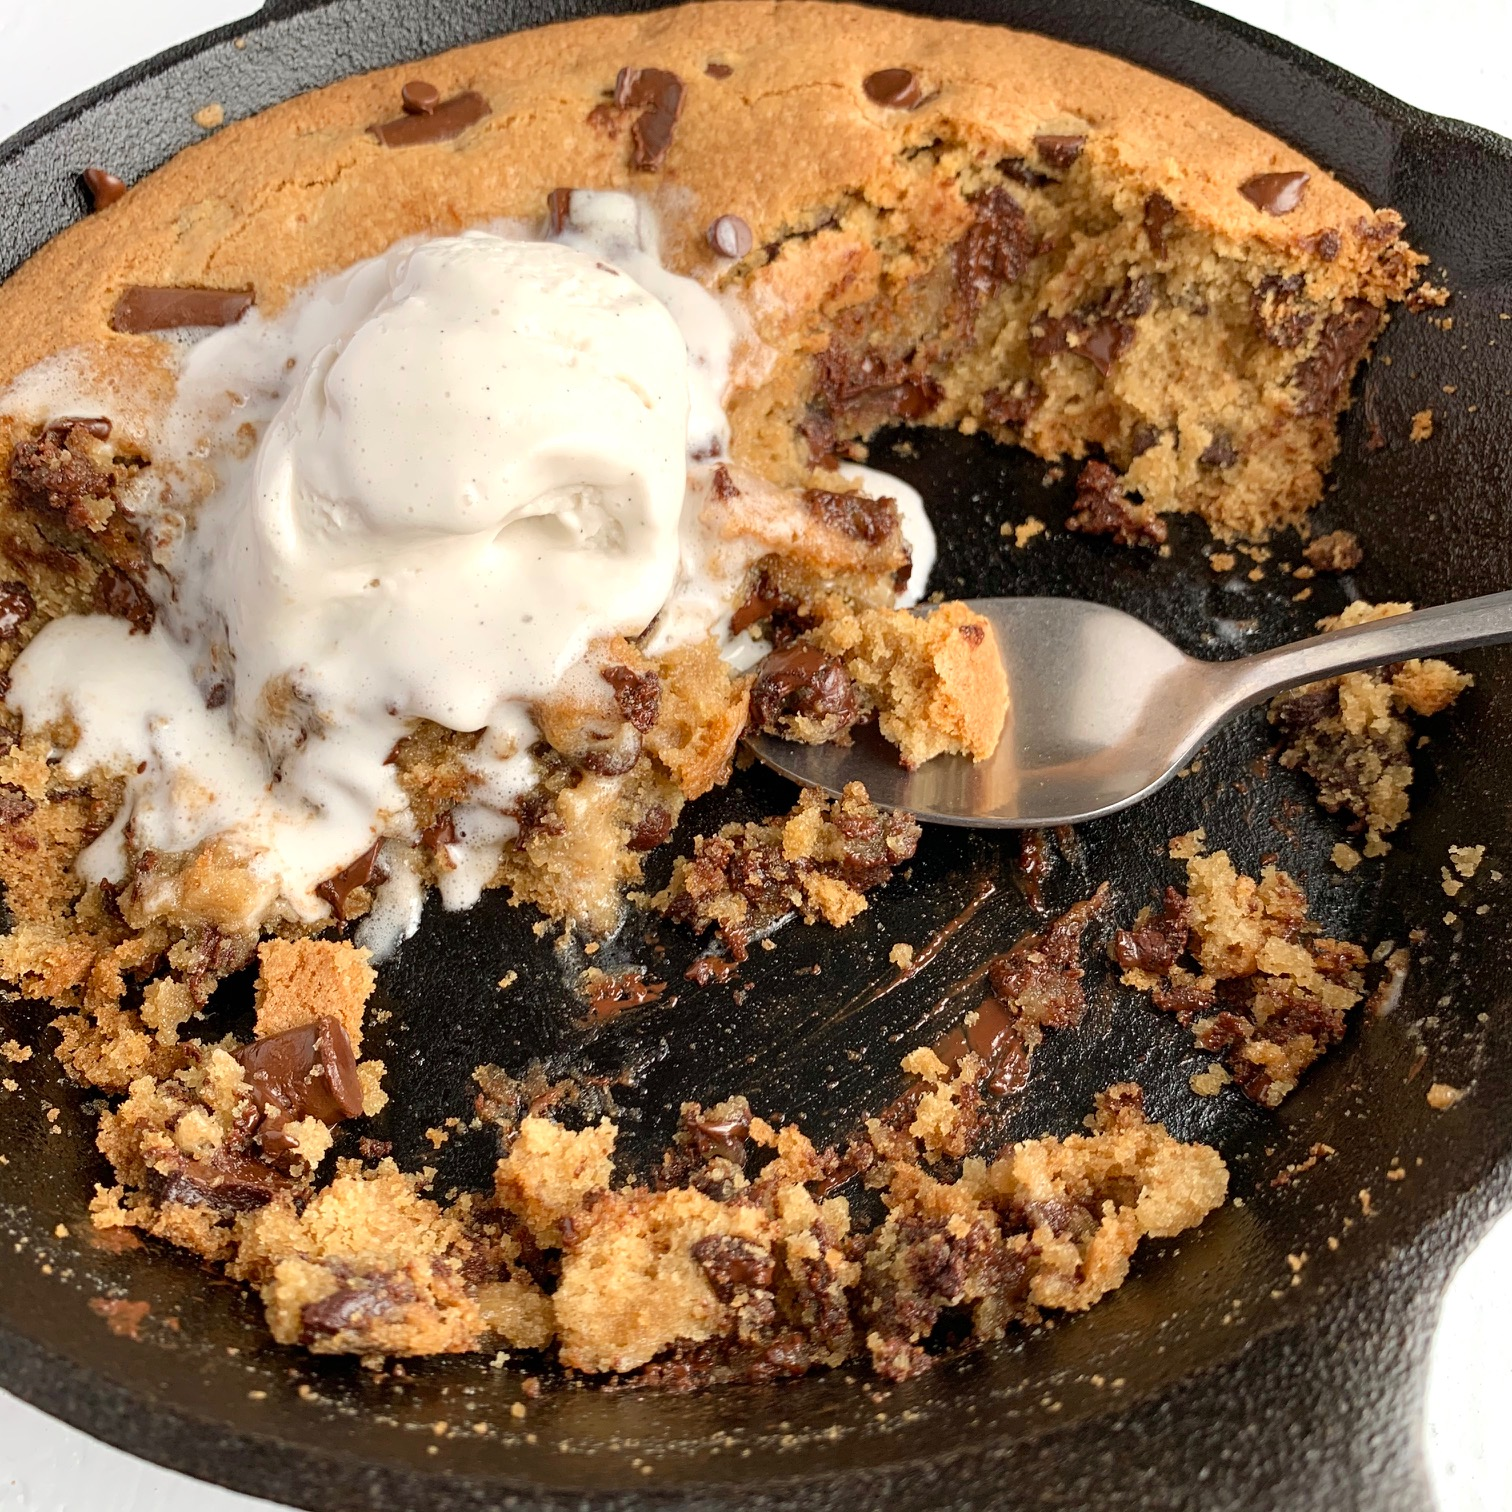 Ice cream melting on a half eaten cookie in a skillet